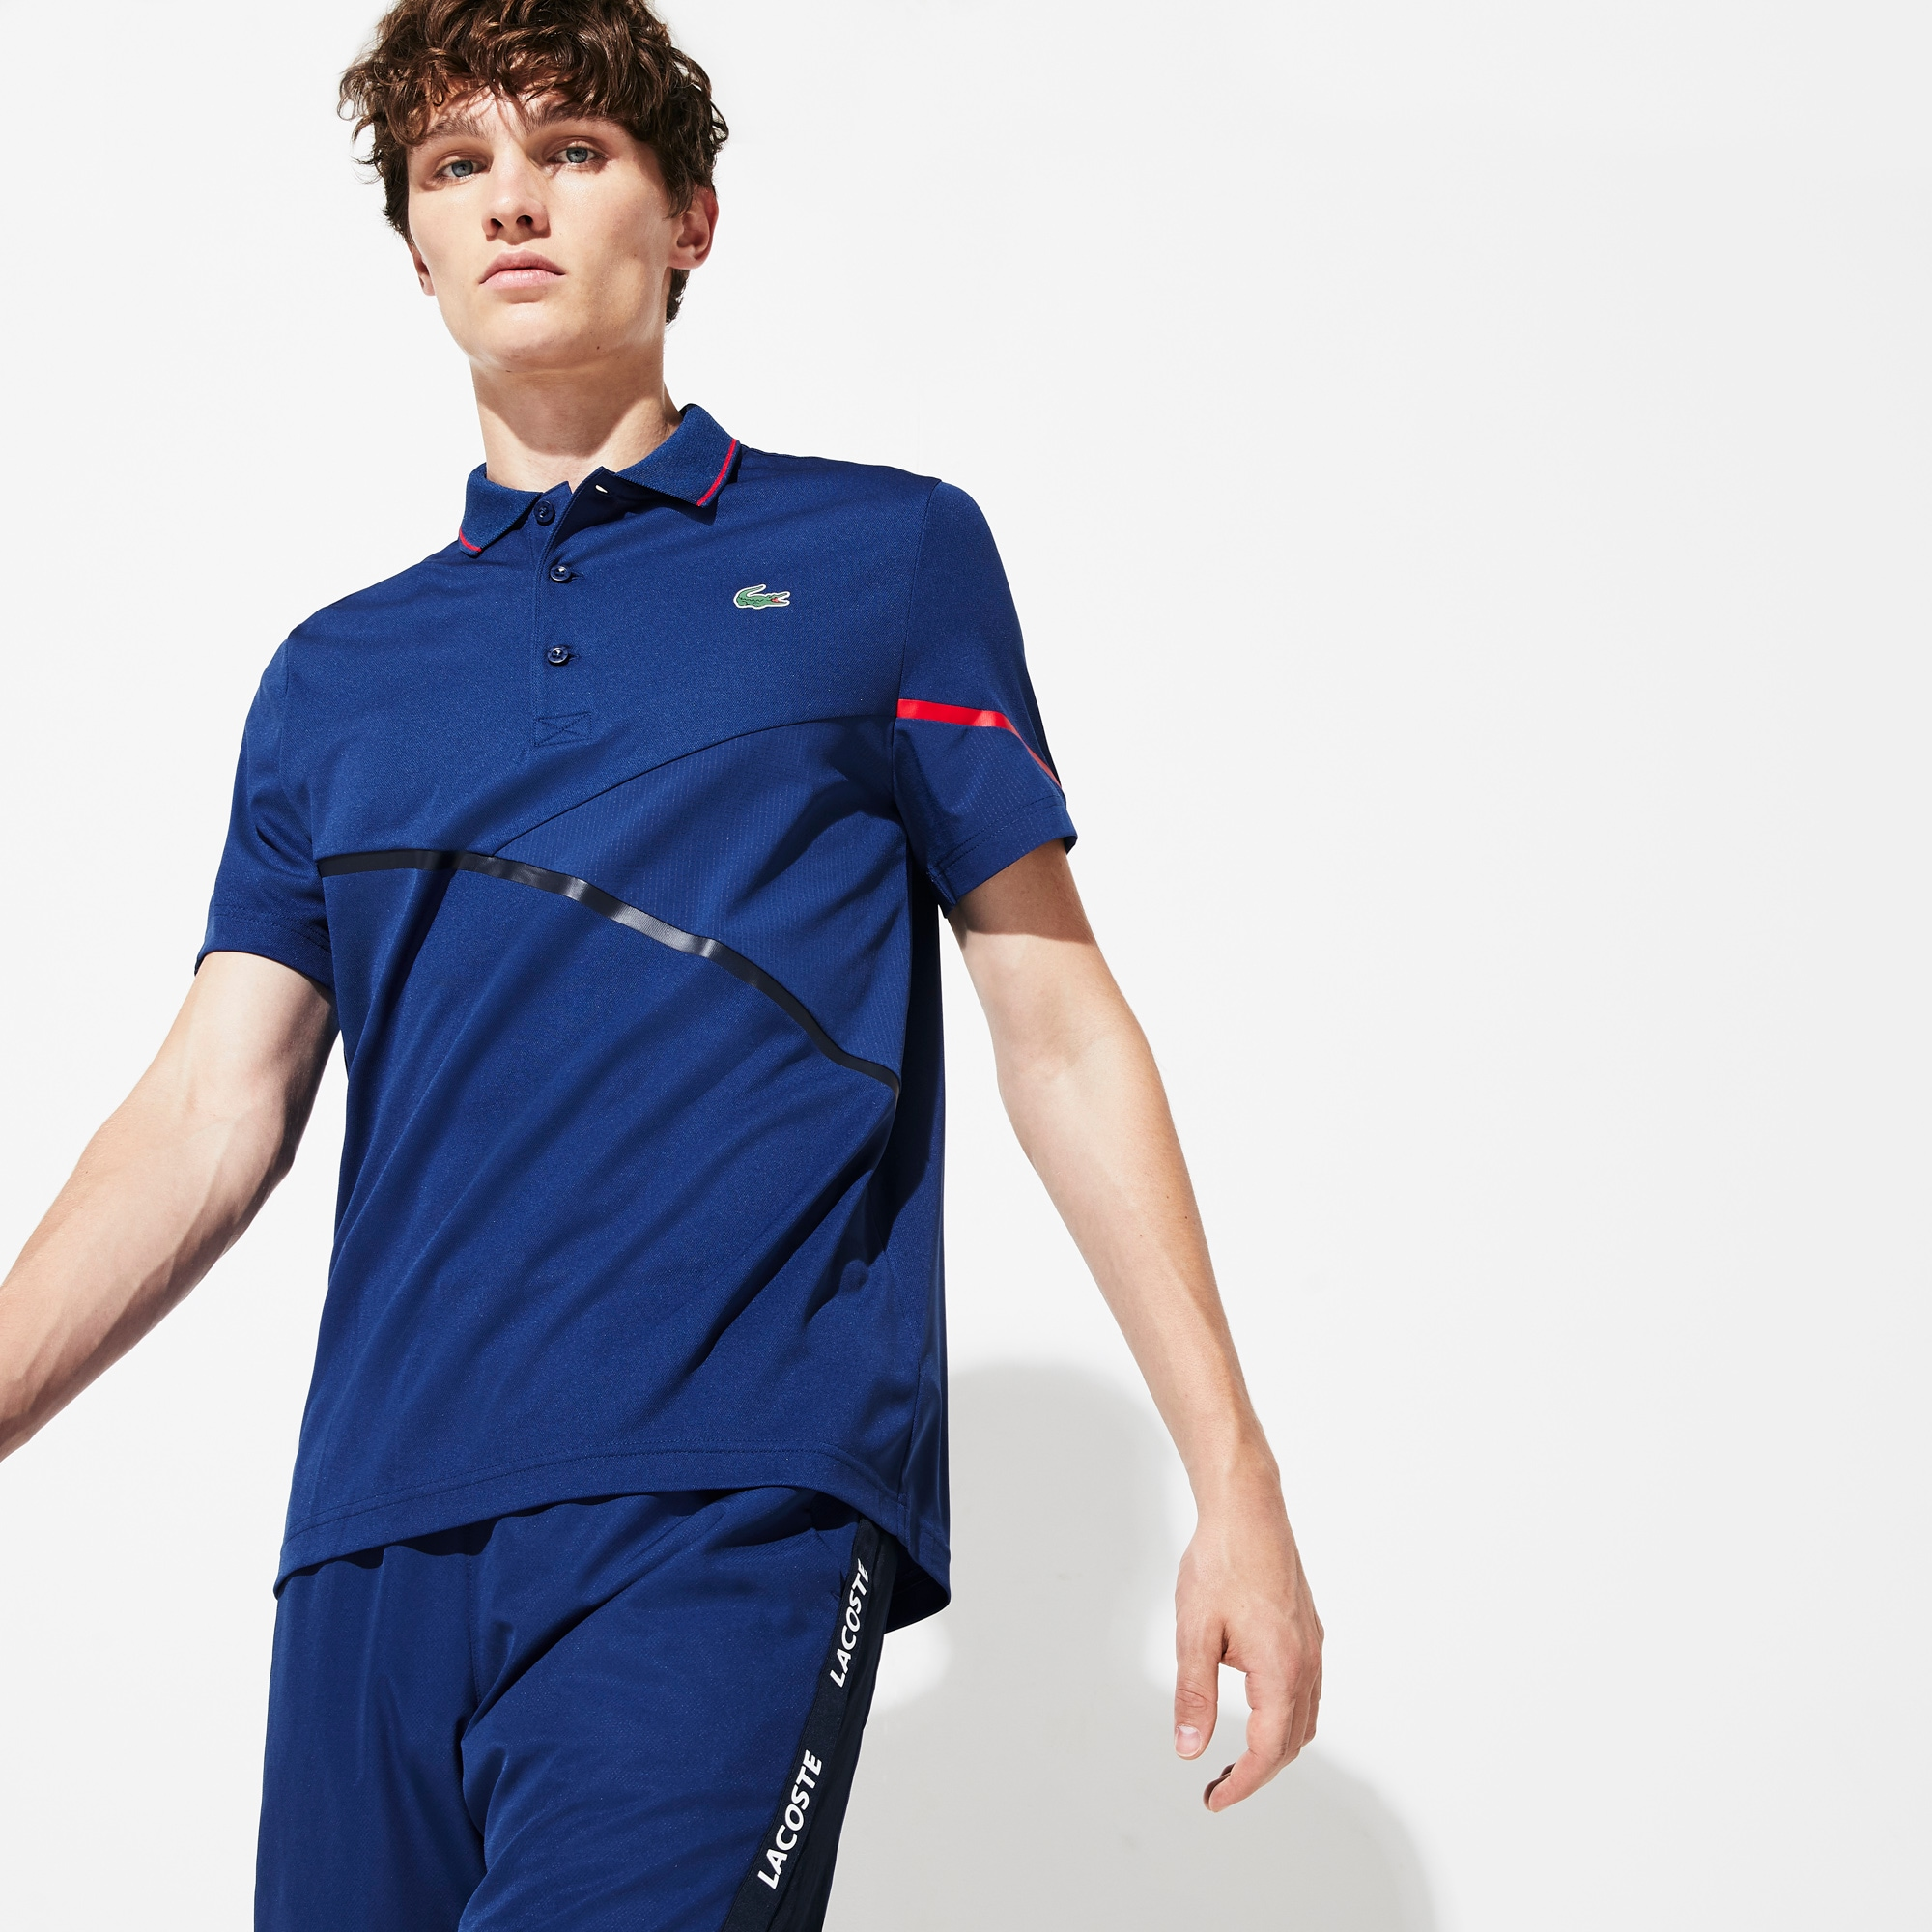 Men's SPORT Mesh-Paneled Piqué Tennis Polo